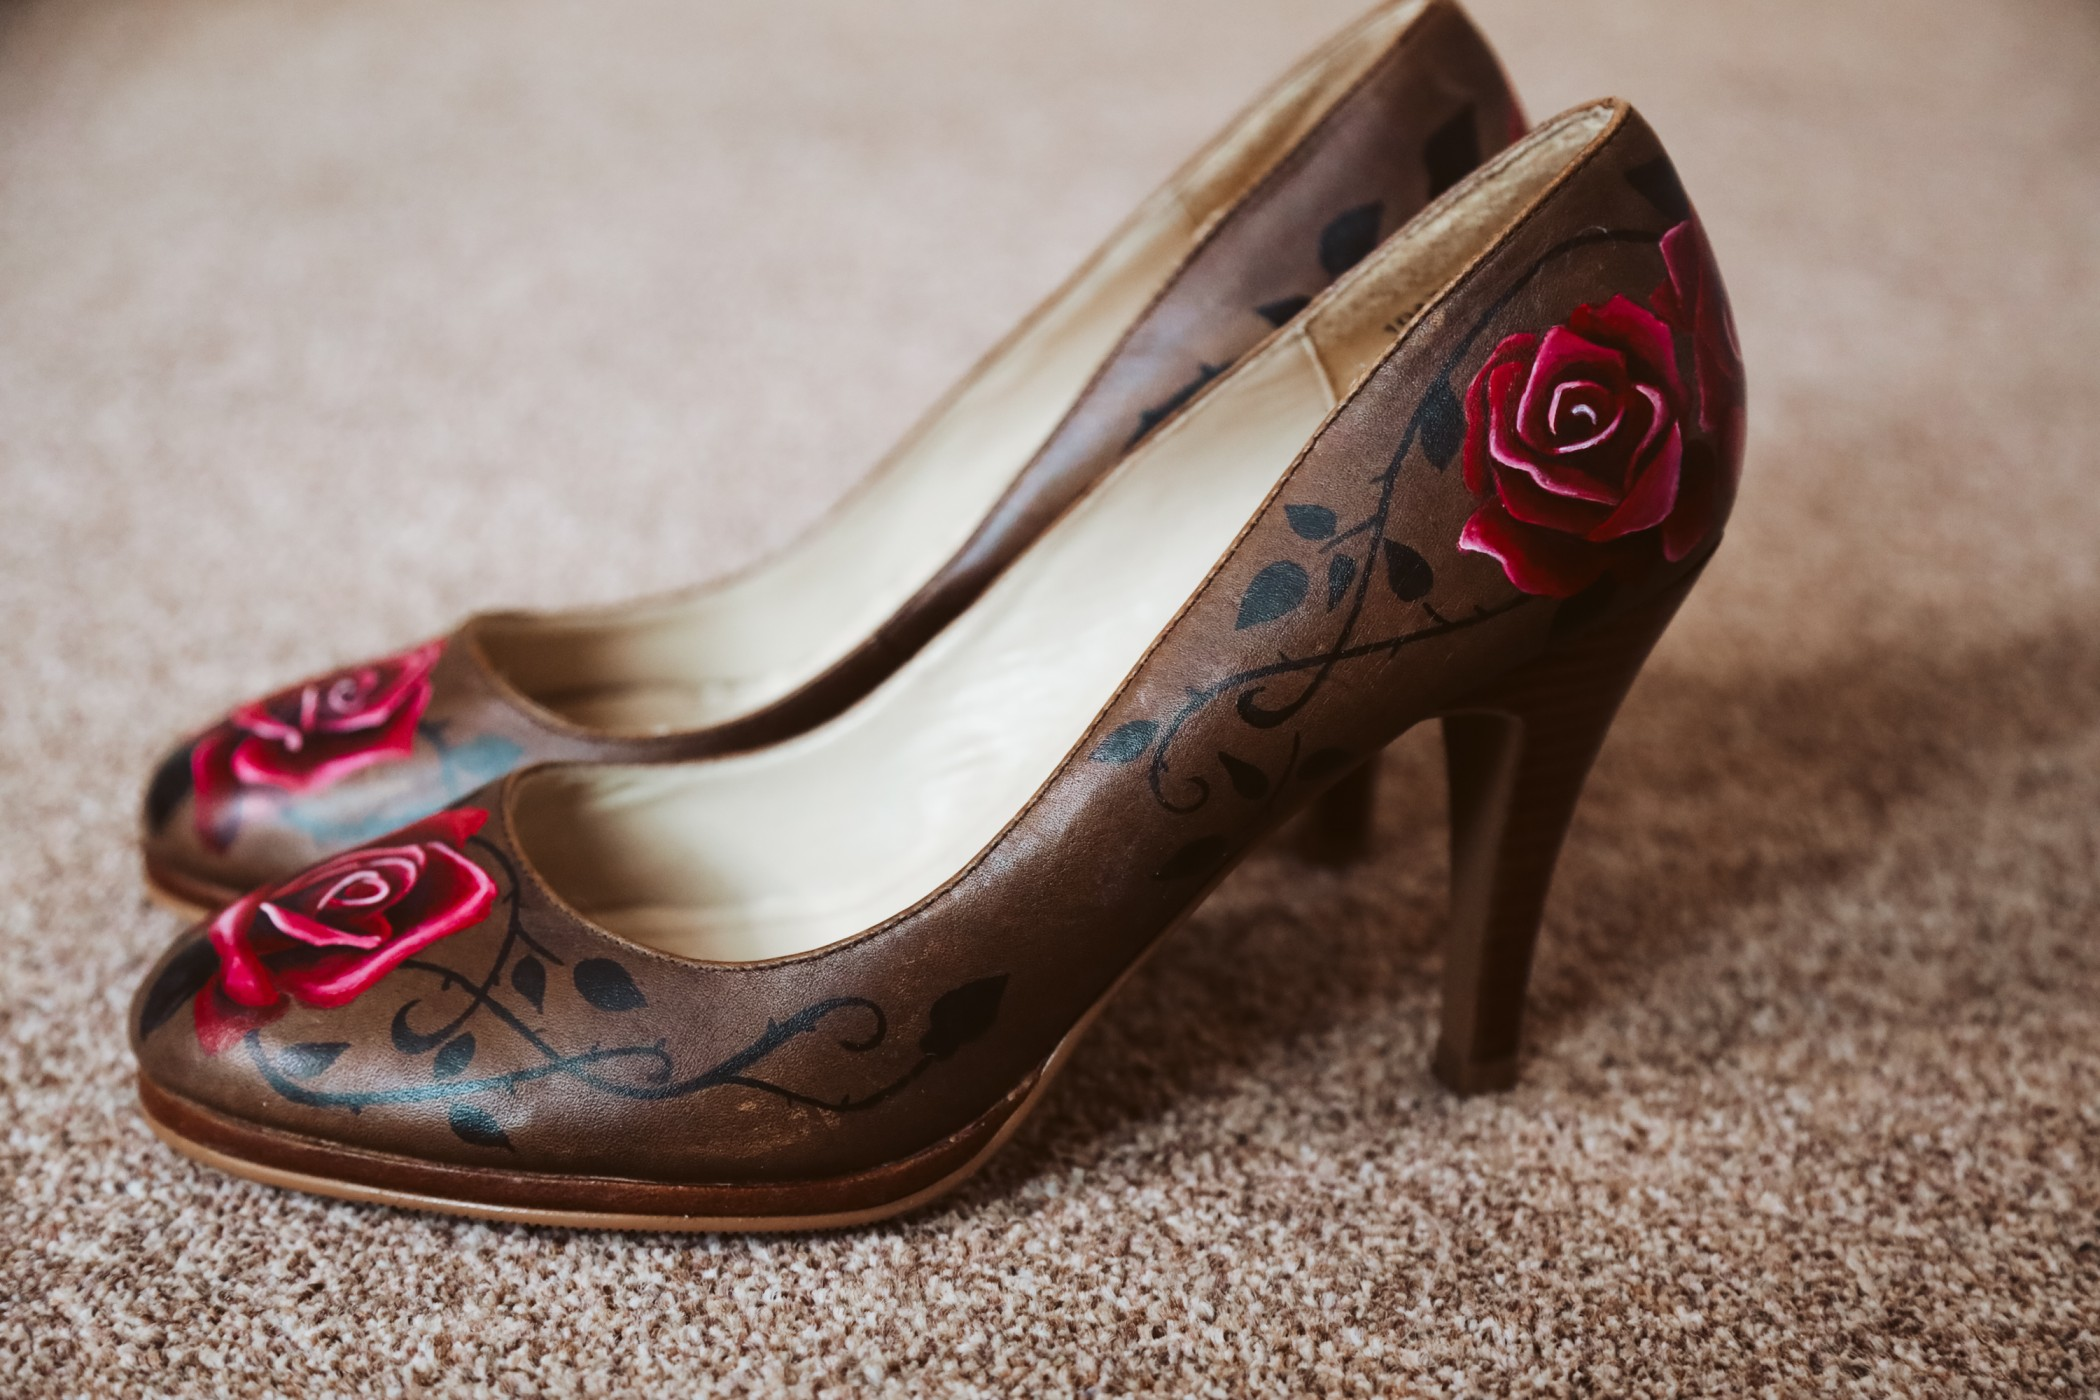 Great Betley Farmhouse wedding venue - Christmas micro wedding shoes with red roses - christmas wedding - nhs wedding (11)